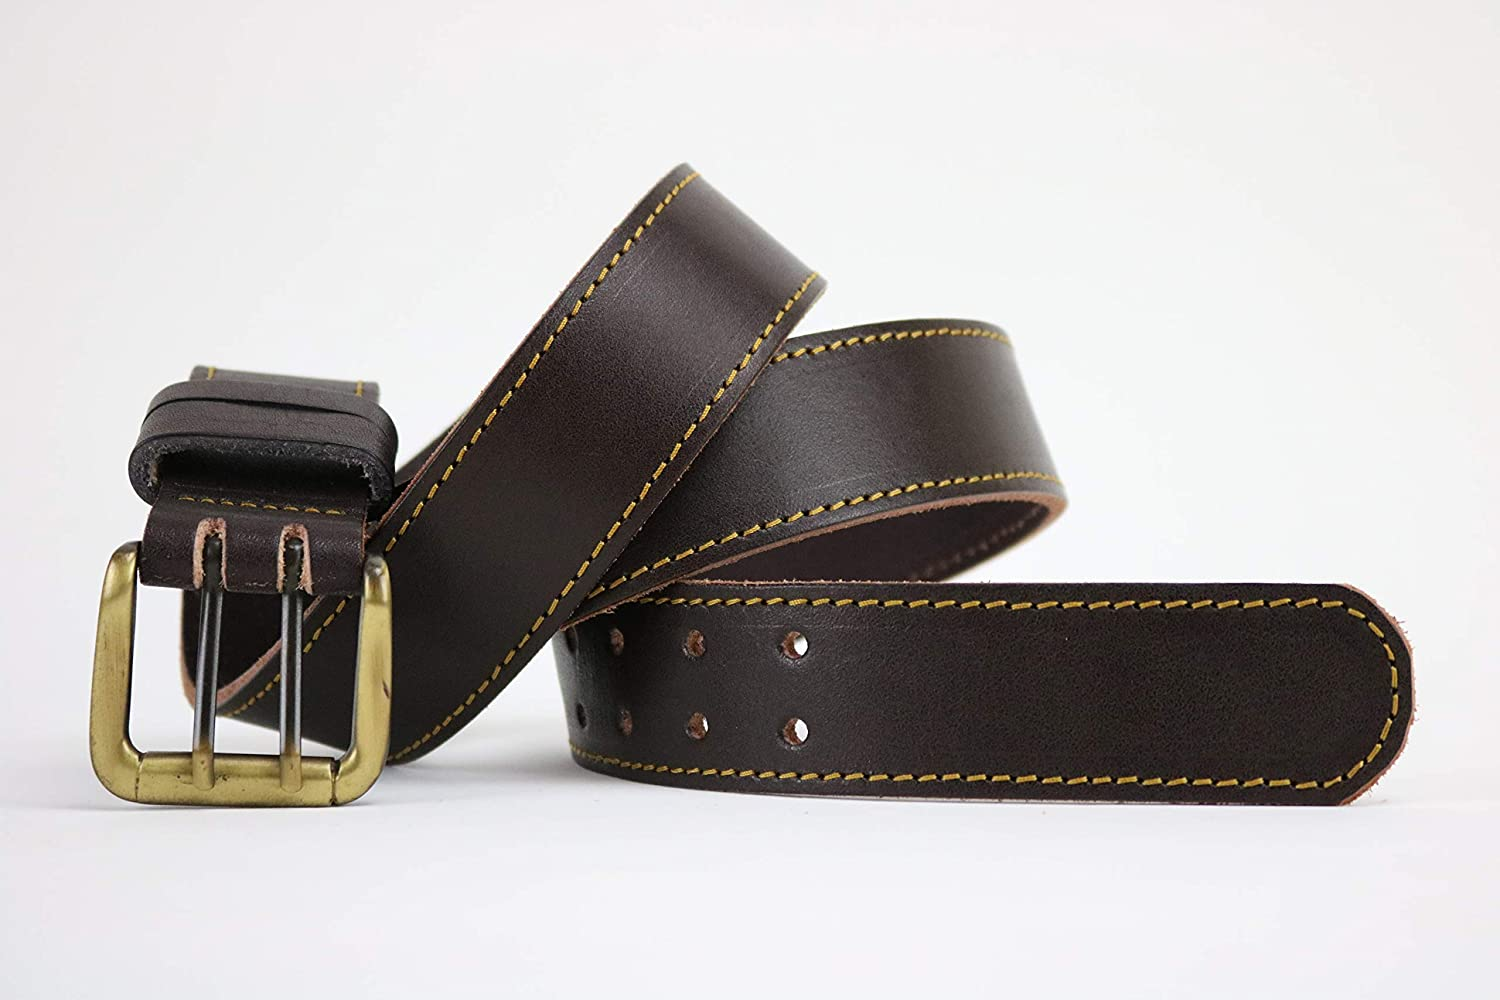 Mens dark brown leather belt with yellow stitching